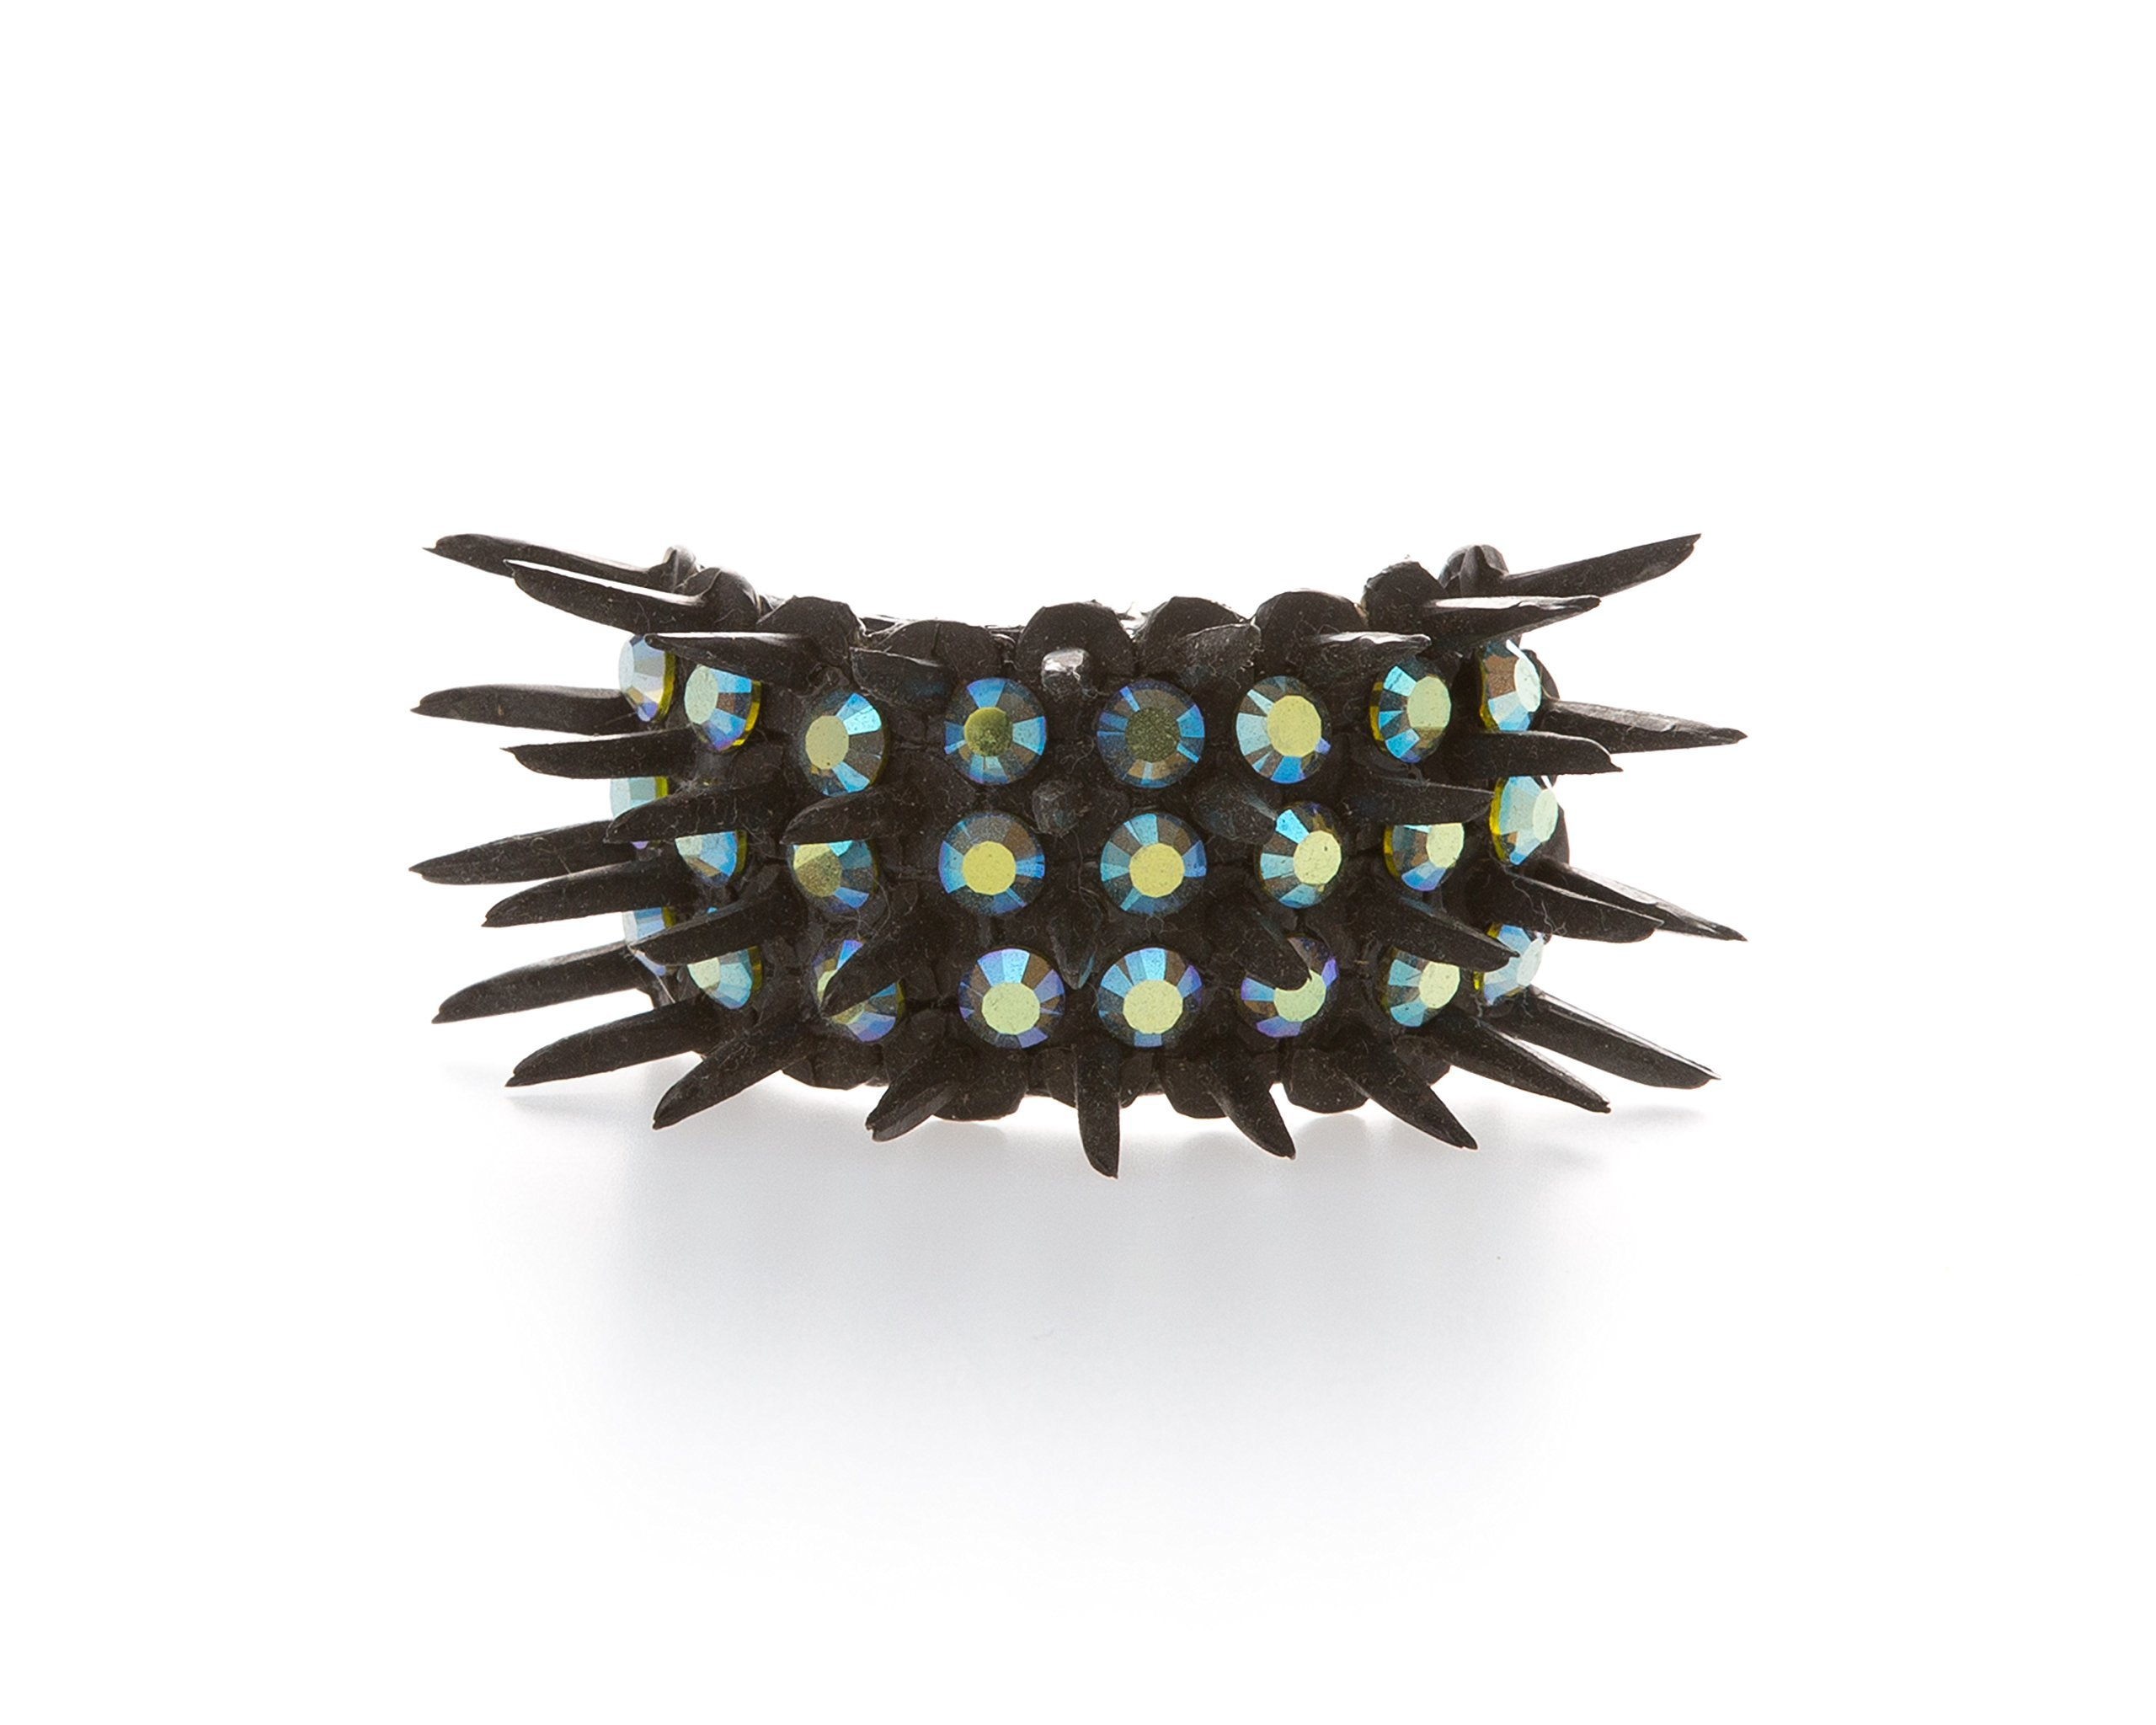 Edgy & Funky Black Spiked Ponytail Holder with Genuine Iridescent Turquoise Swarovski Crystals